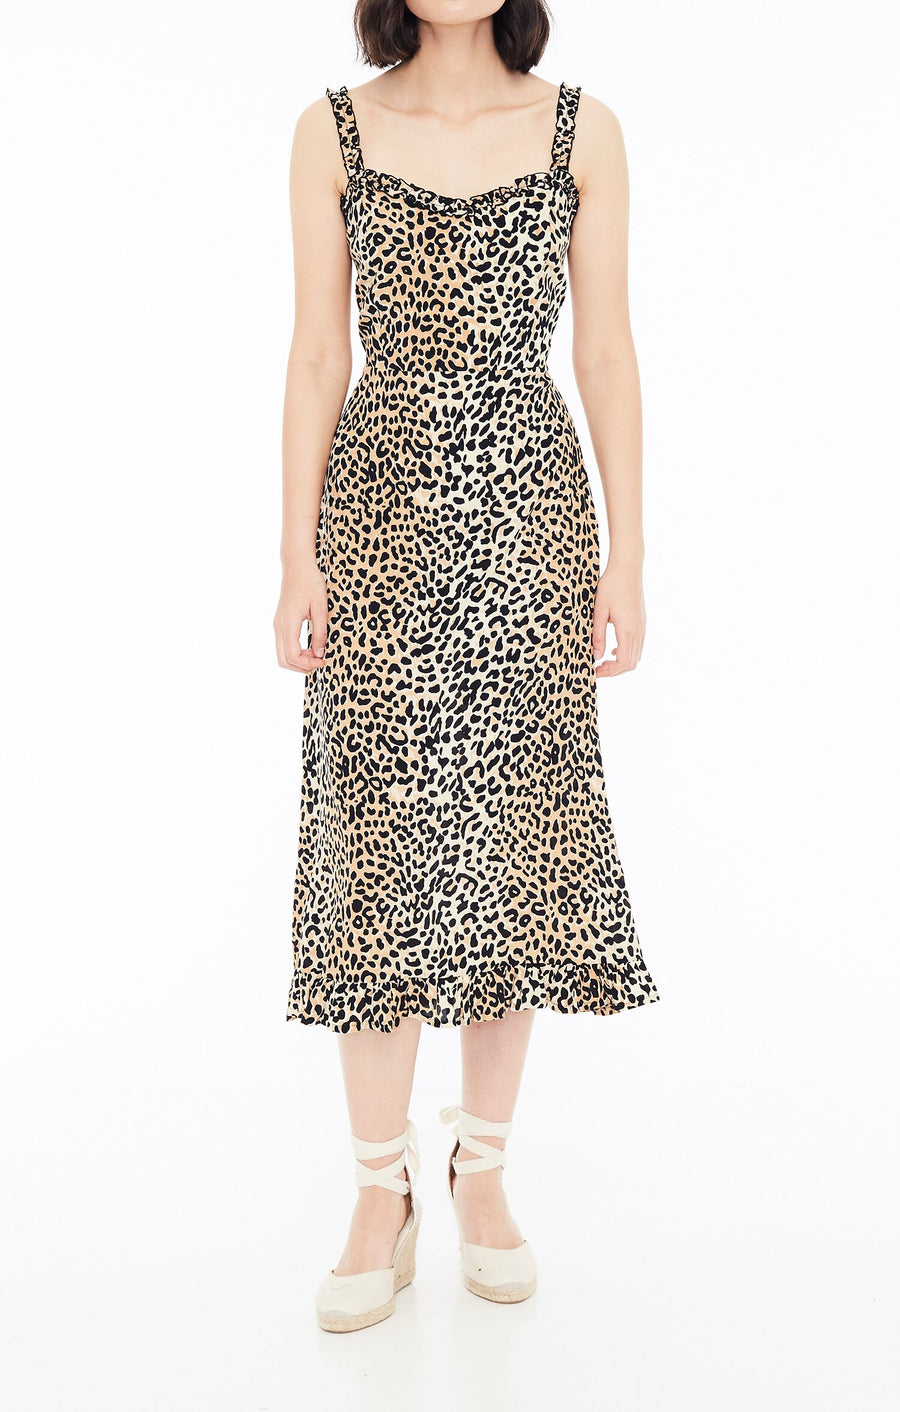 FAITHFULL THE BRAND - Noemie Midi Dress - Le Clinq Animal Print